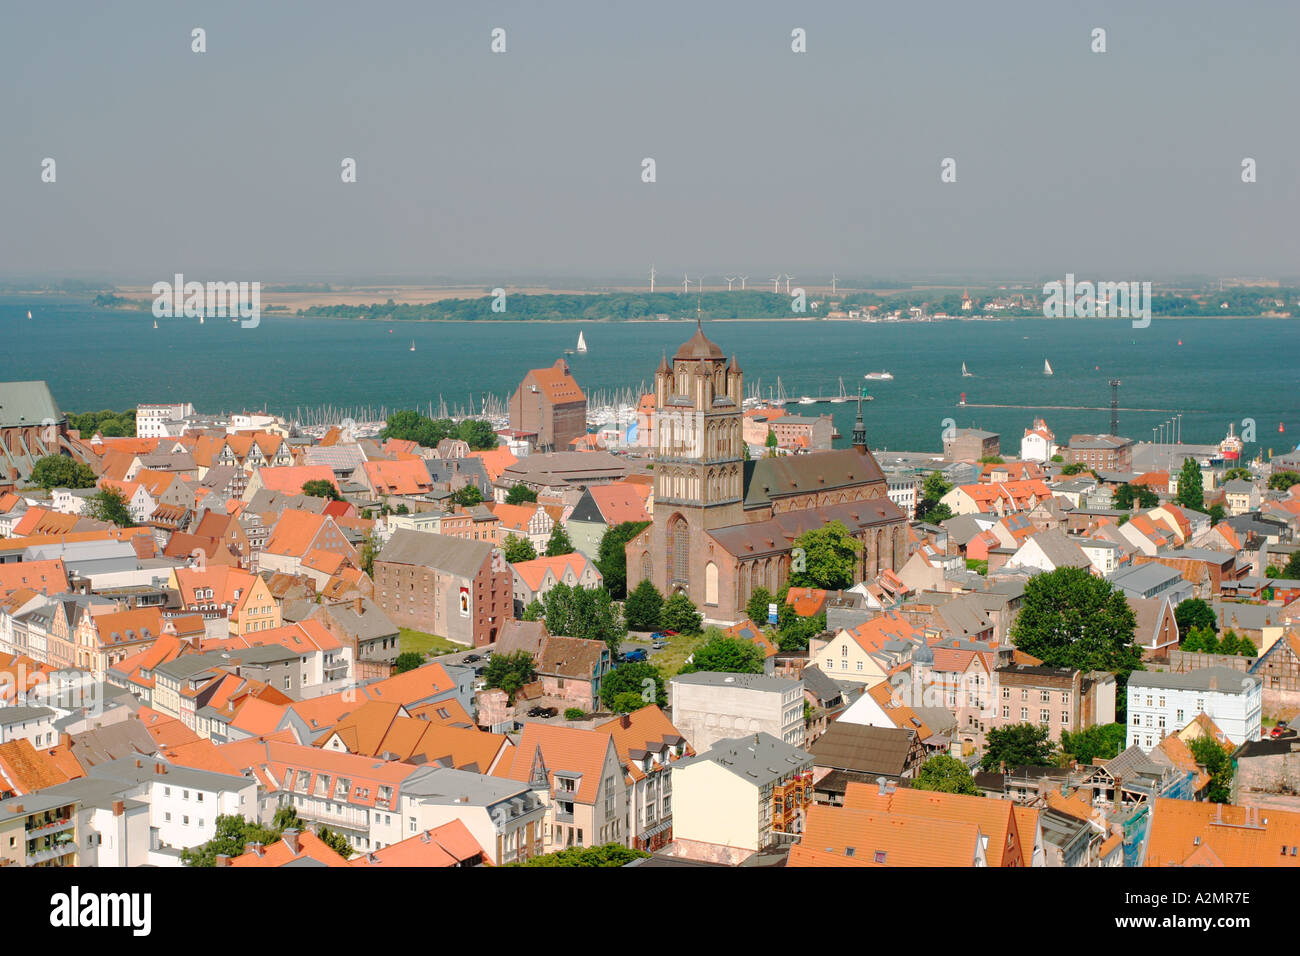 BRD Germany Mecklenburg Vorpommern City Stralsund Historical Houses in the Down Town View from Tower of Mariens Church to - Stock Image